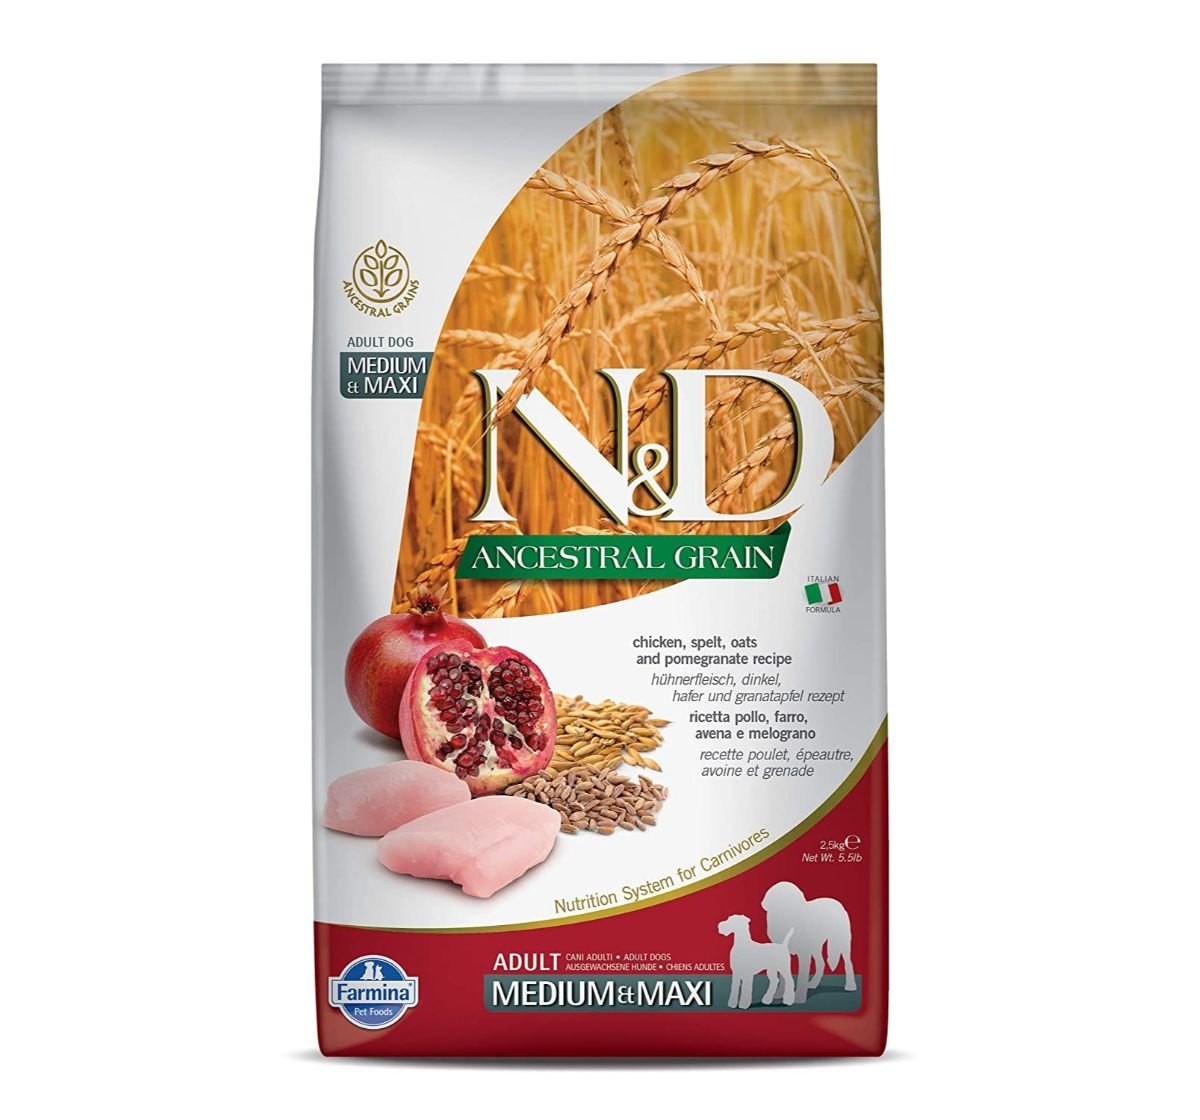 Farmina N&D Dry Dog Food Ancestral Grain Chicken & Pomegranate Adult Medium & Maxi Breed - 2.5 Kg